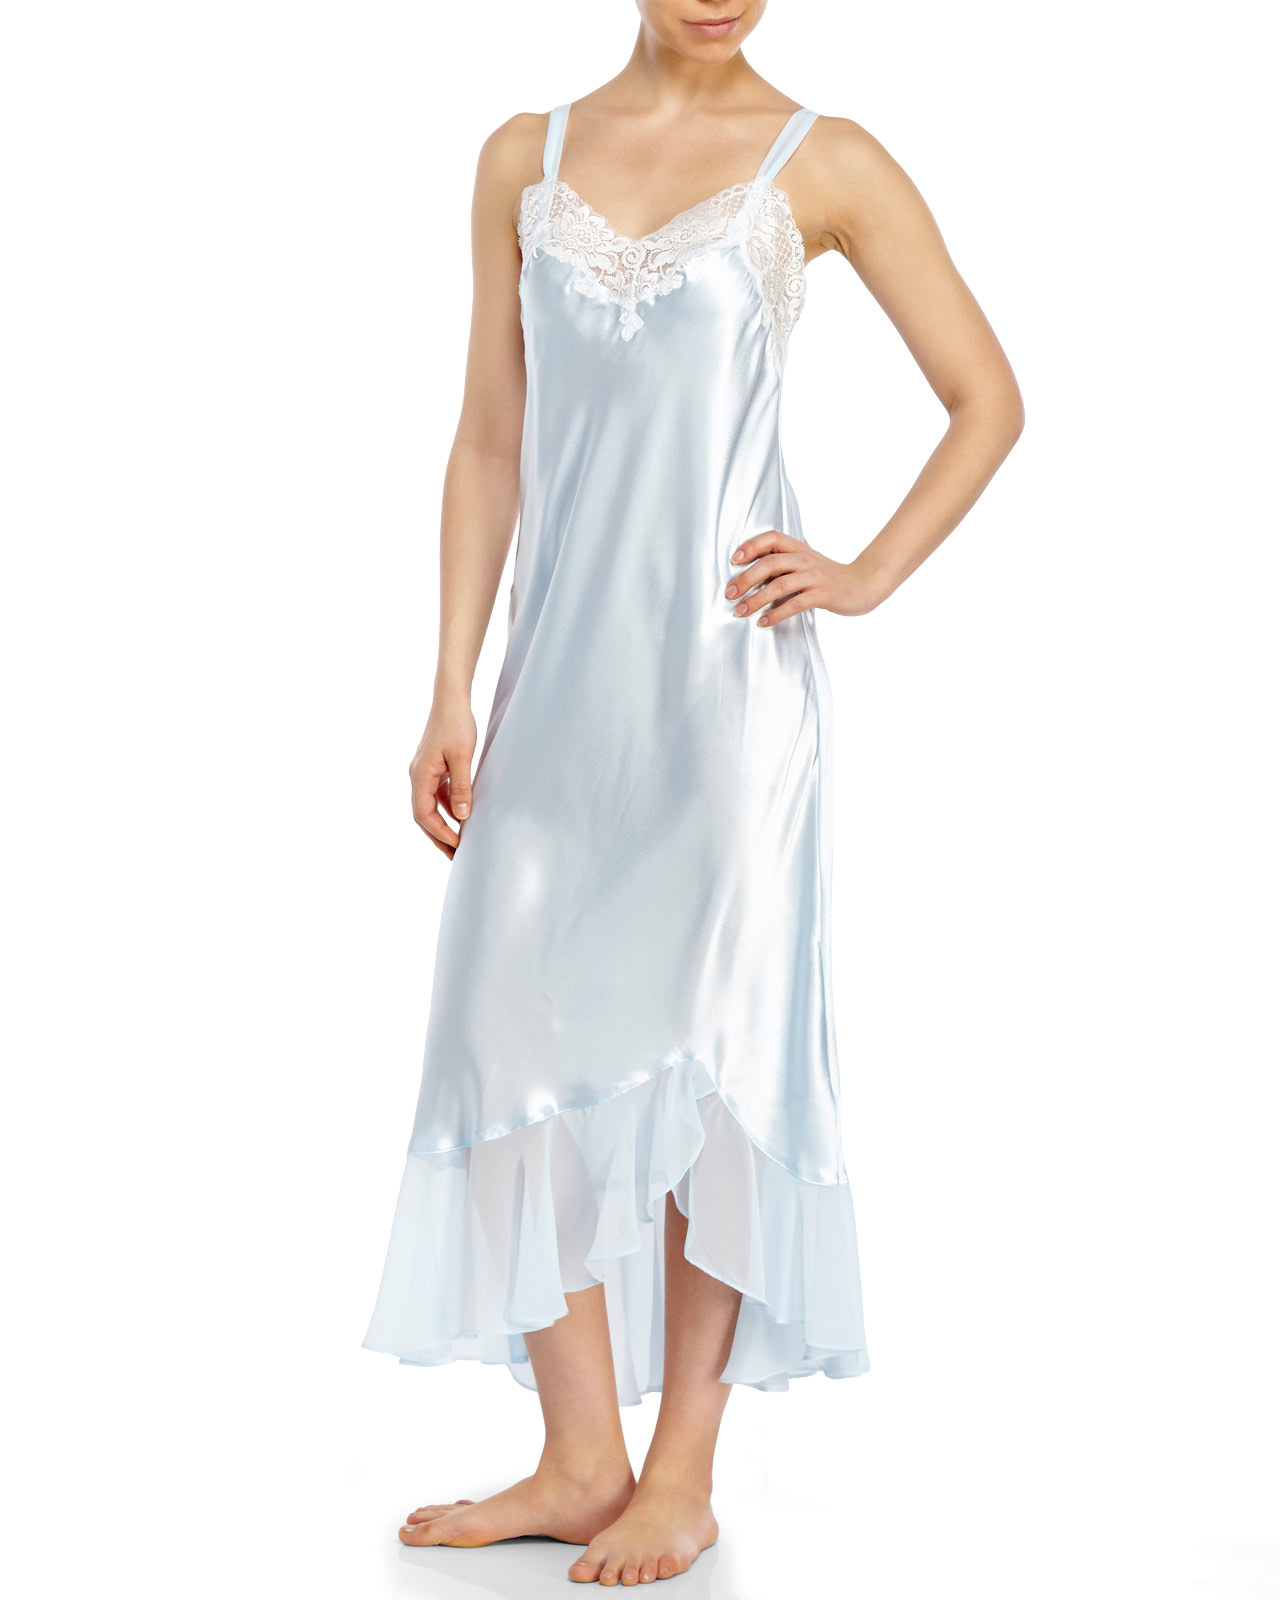 3eb14cb3f Oscar de la Renta Always A Bride Nightgown in Blue - Lyst